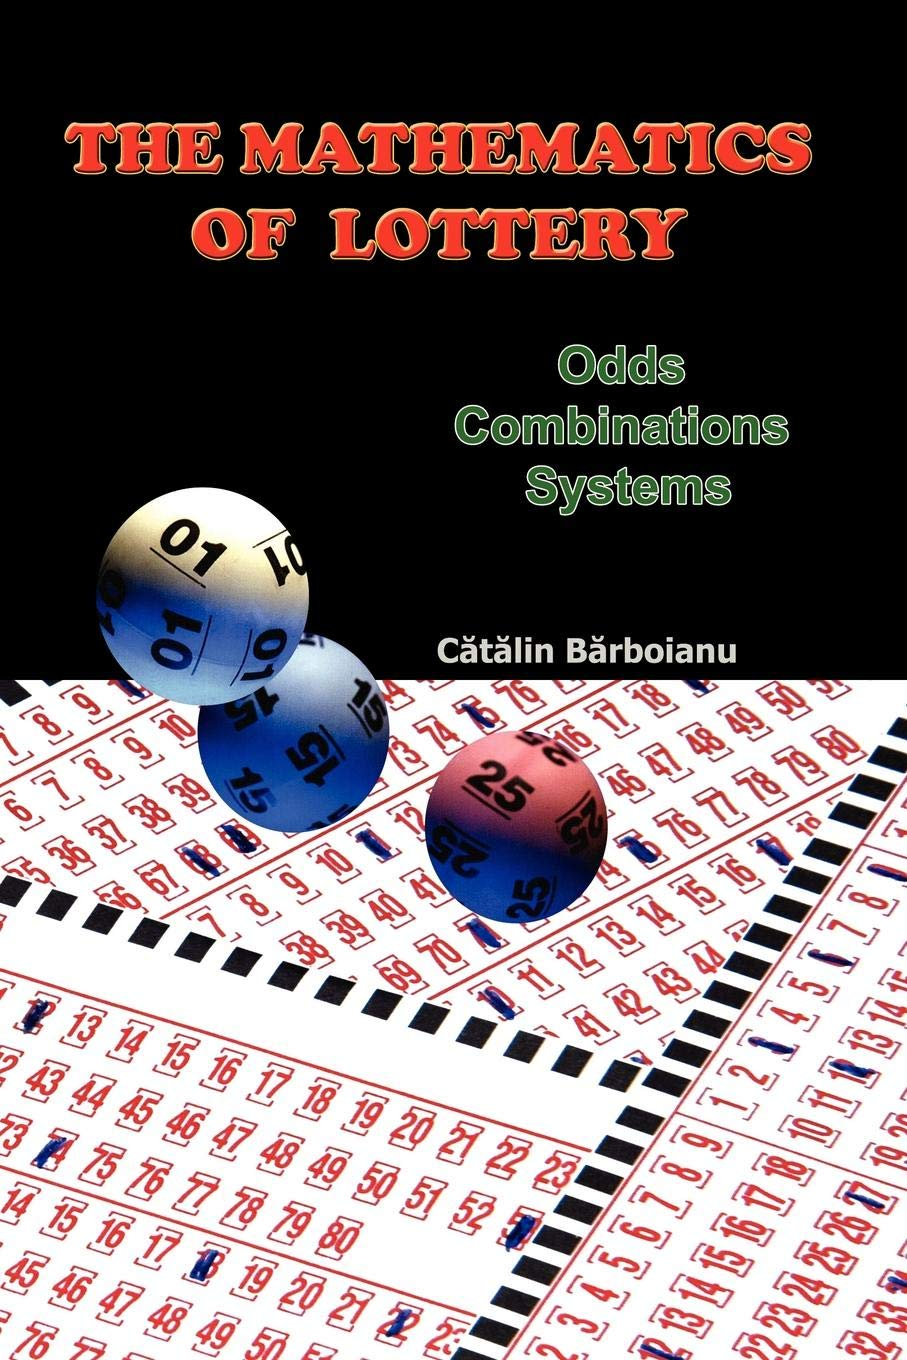 Health Lottery Odds >> The Mathematics Of Lottery Odds Combinations Systems